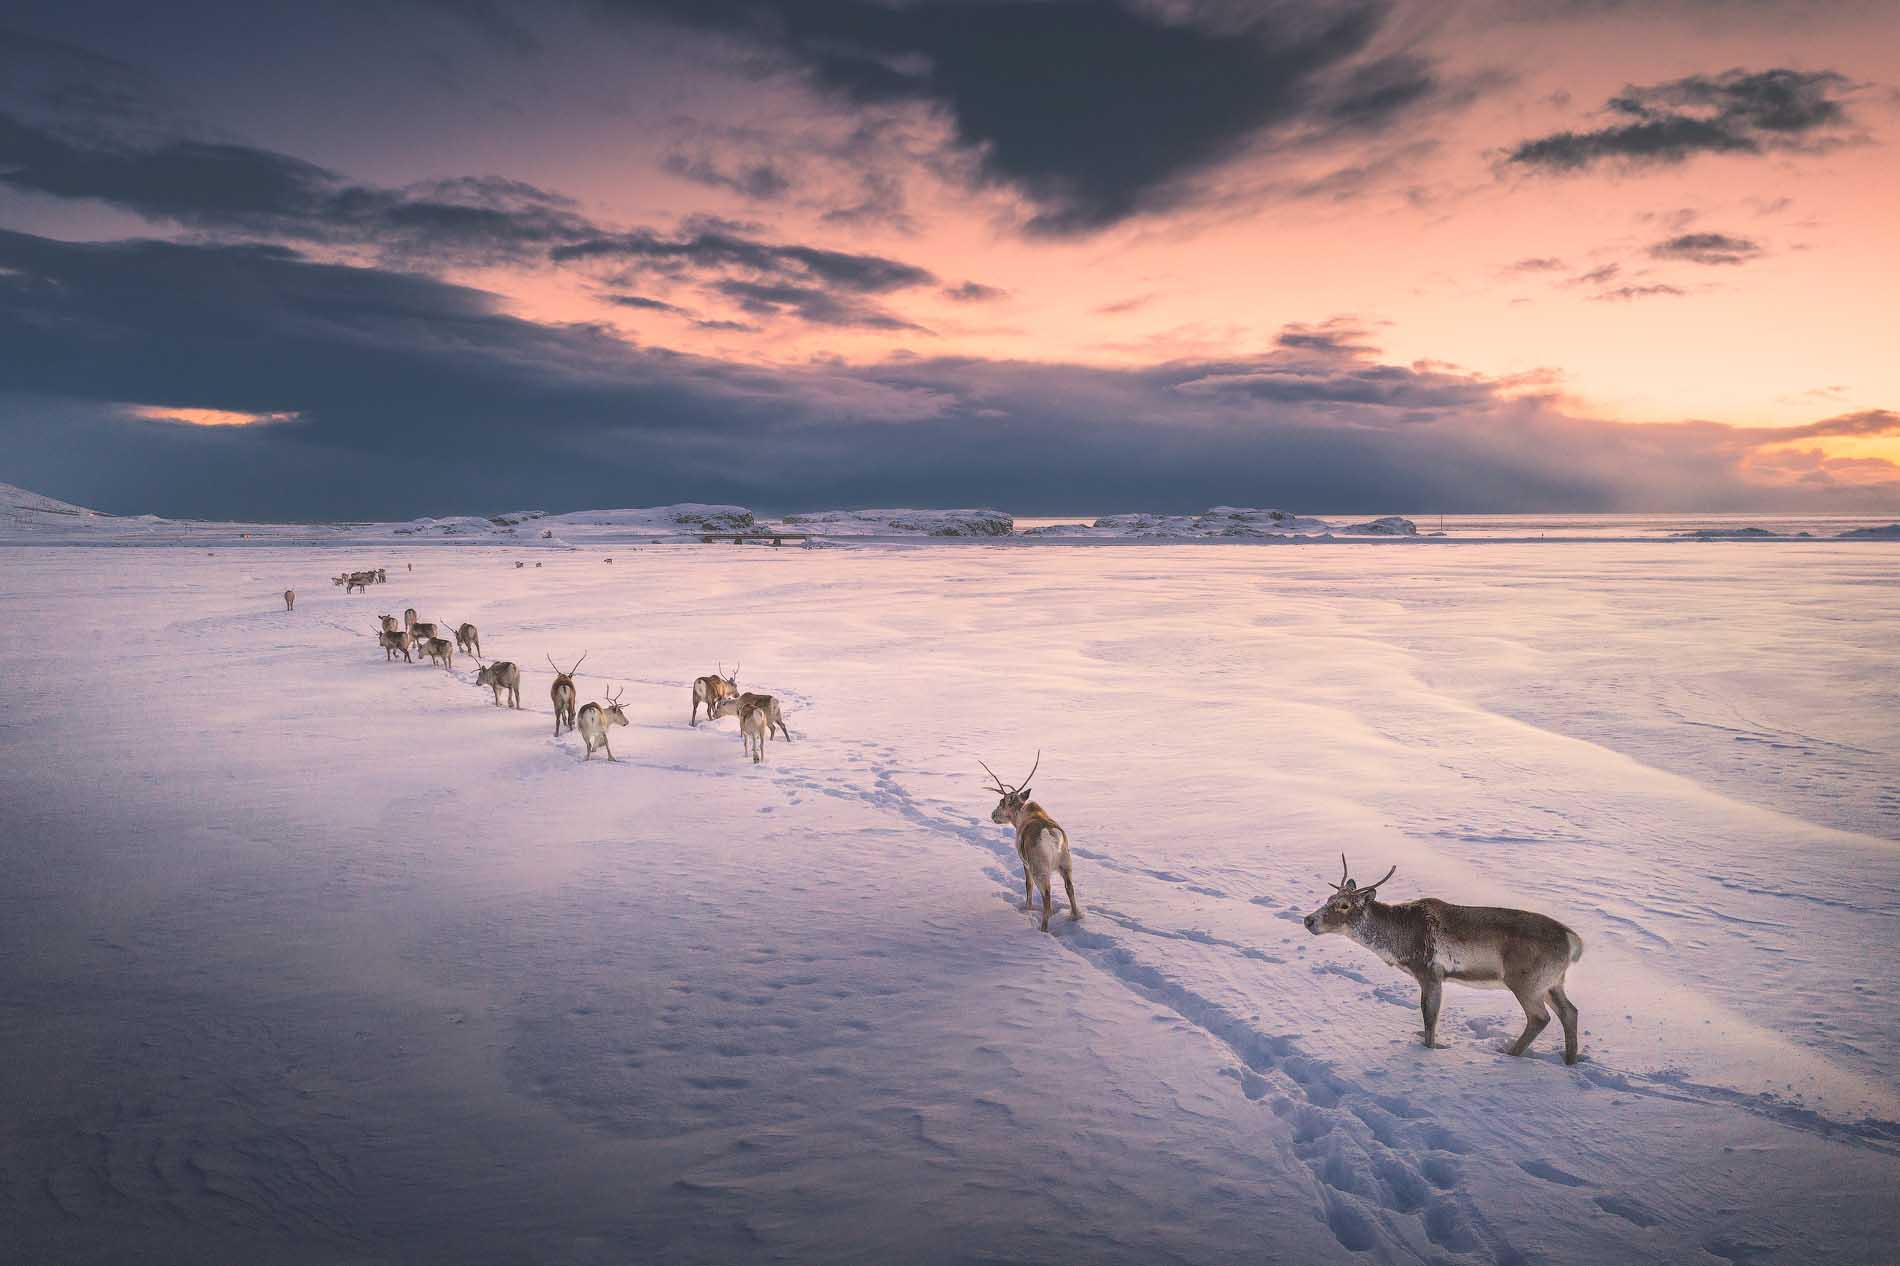 6 Day Winter Circle of Iceland Tour | Small Group - day 4